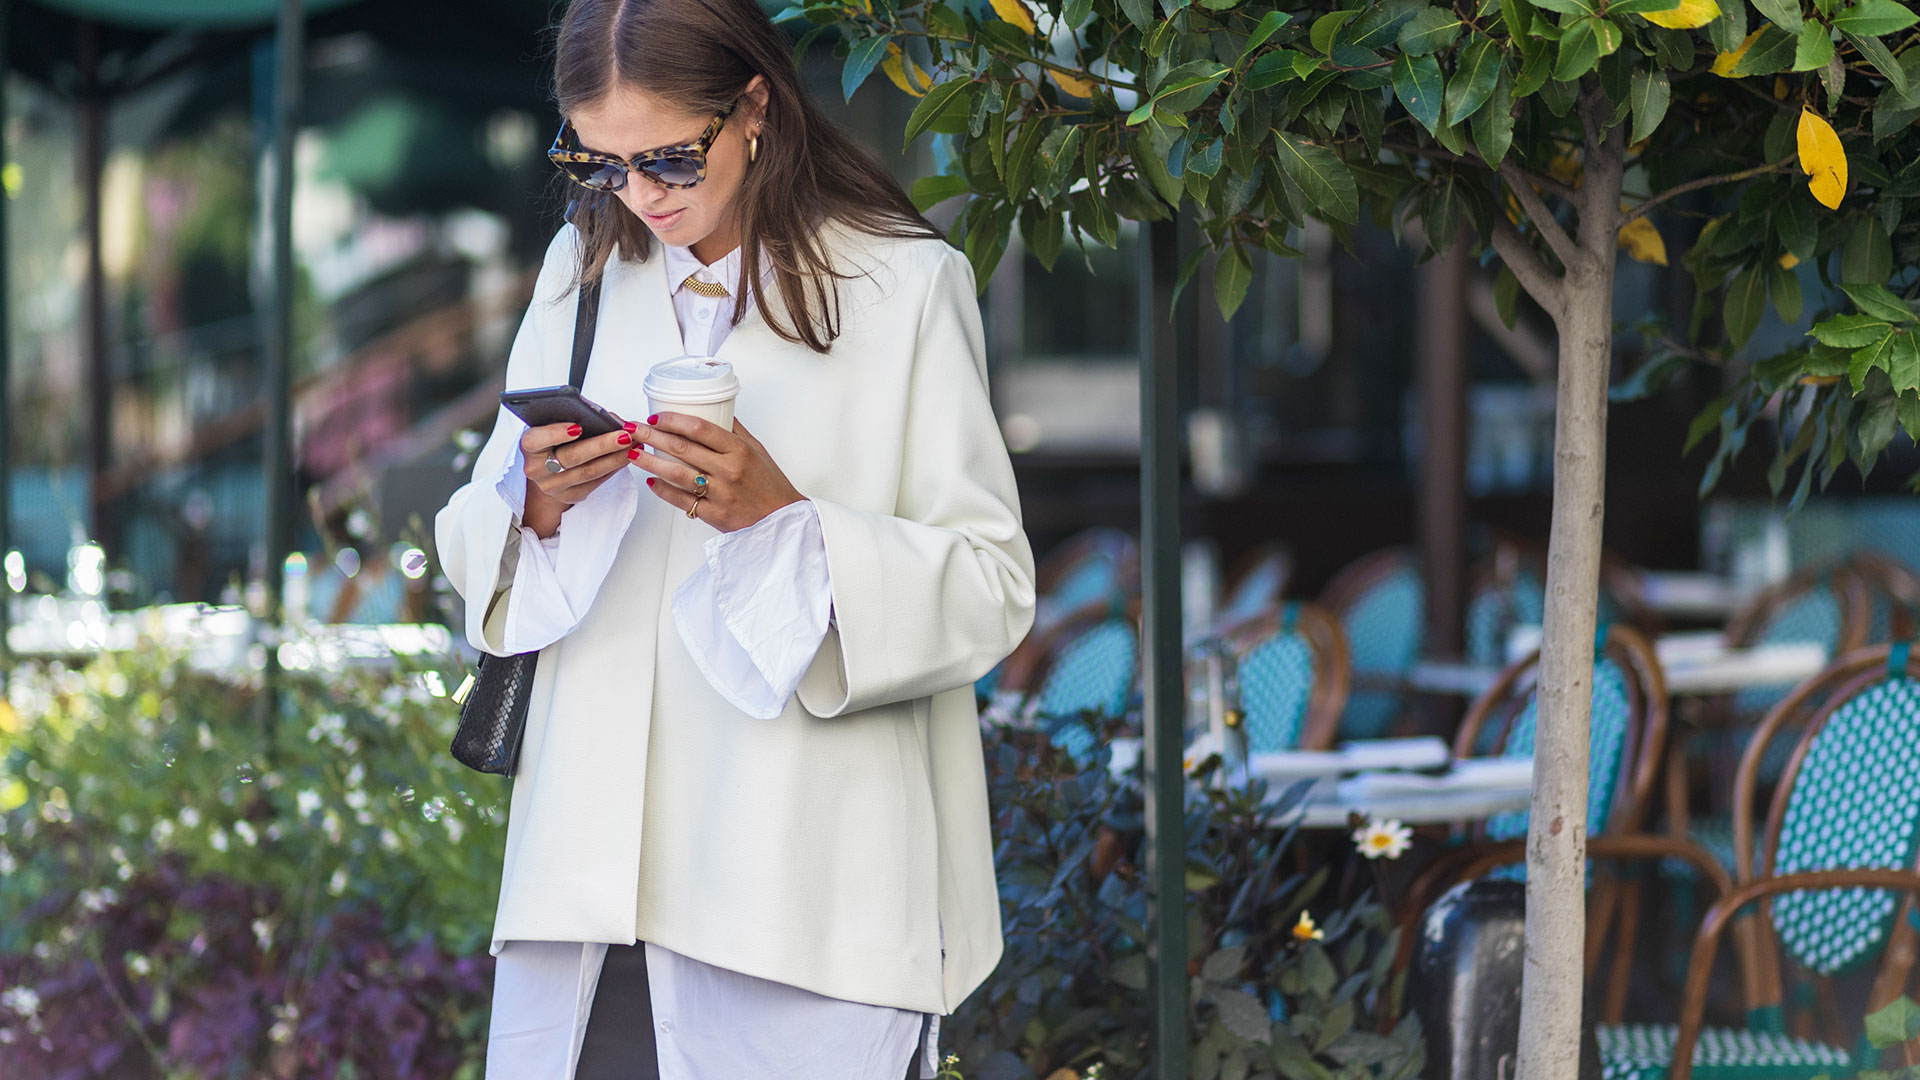 STYLECASTER | How to Land Your Dream Job